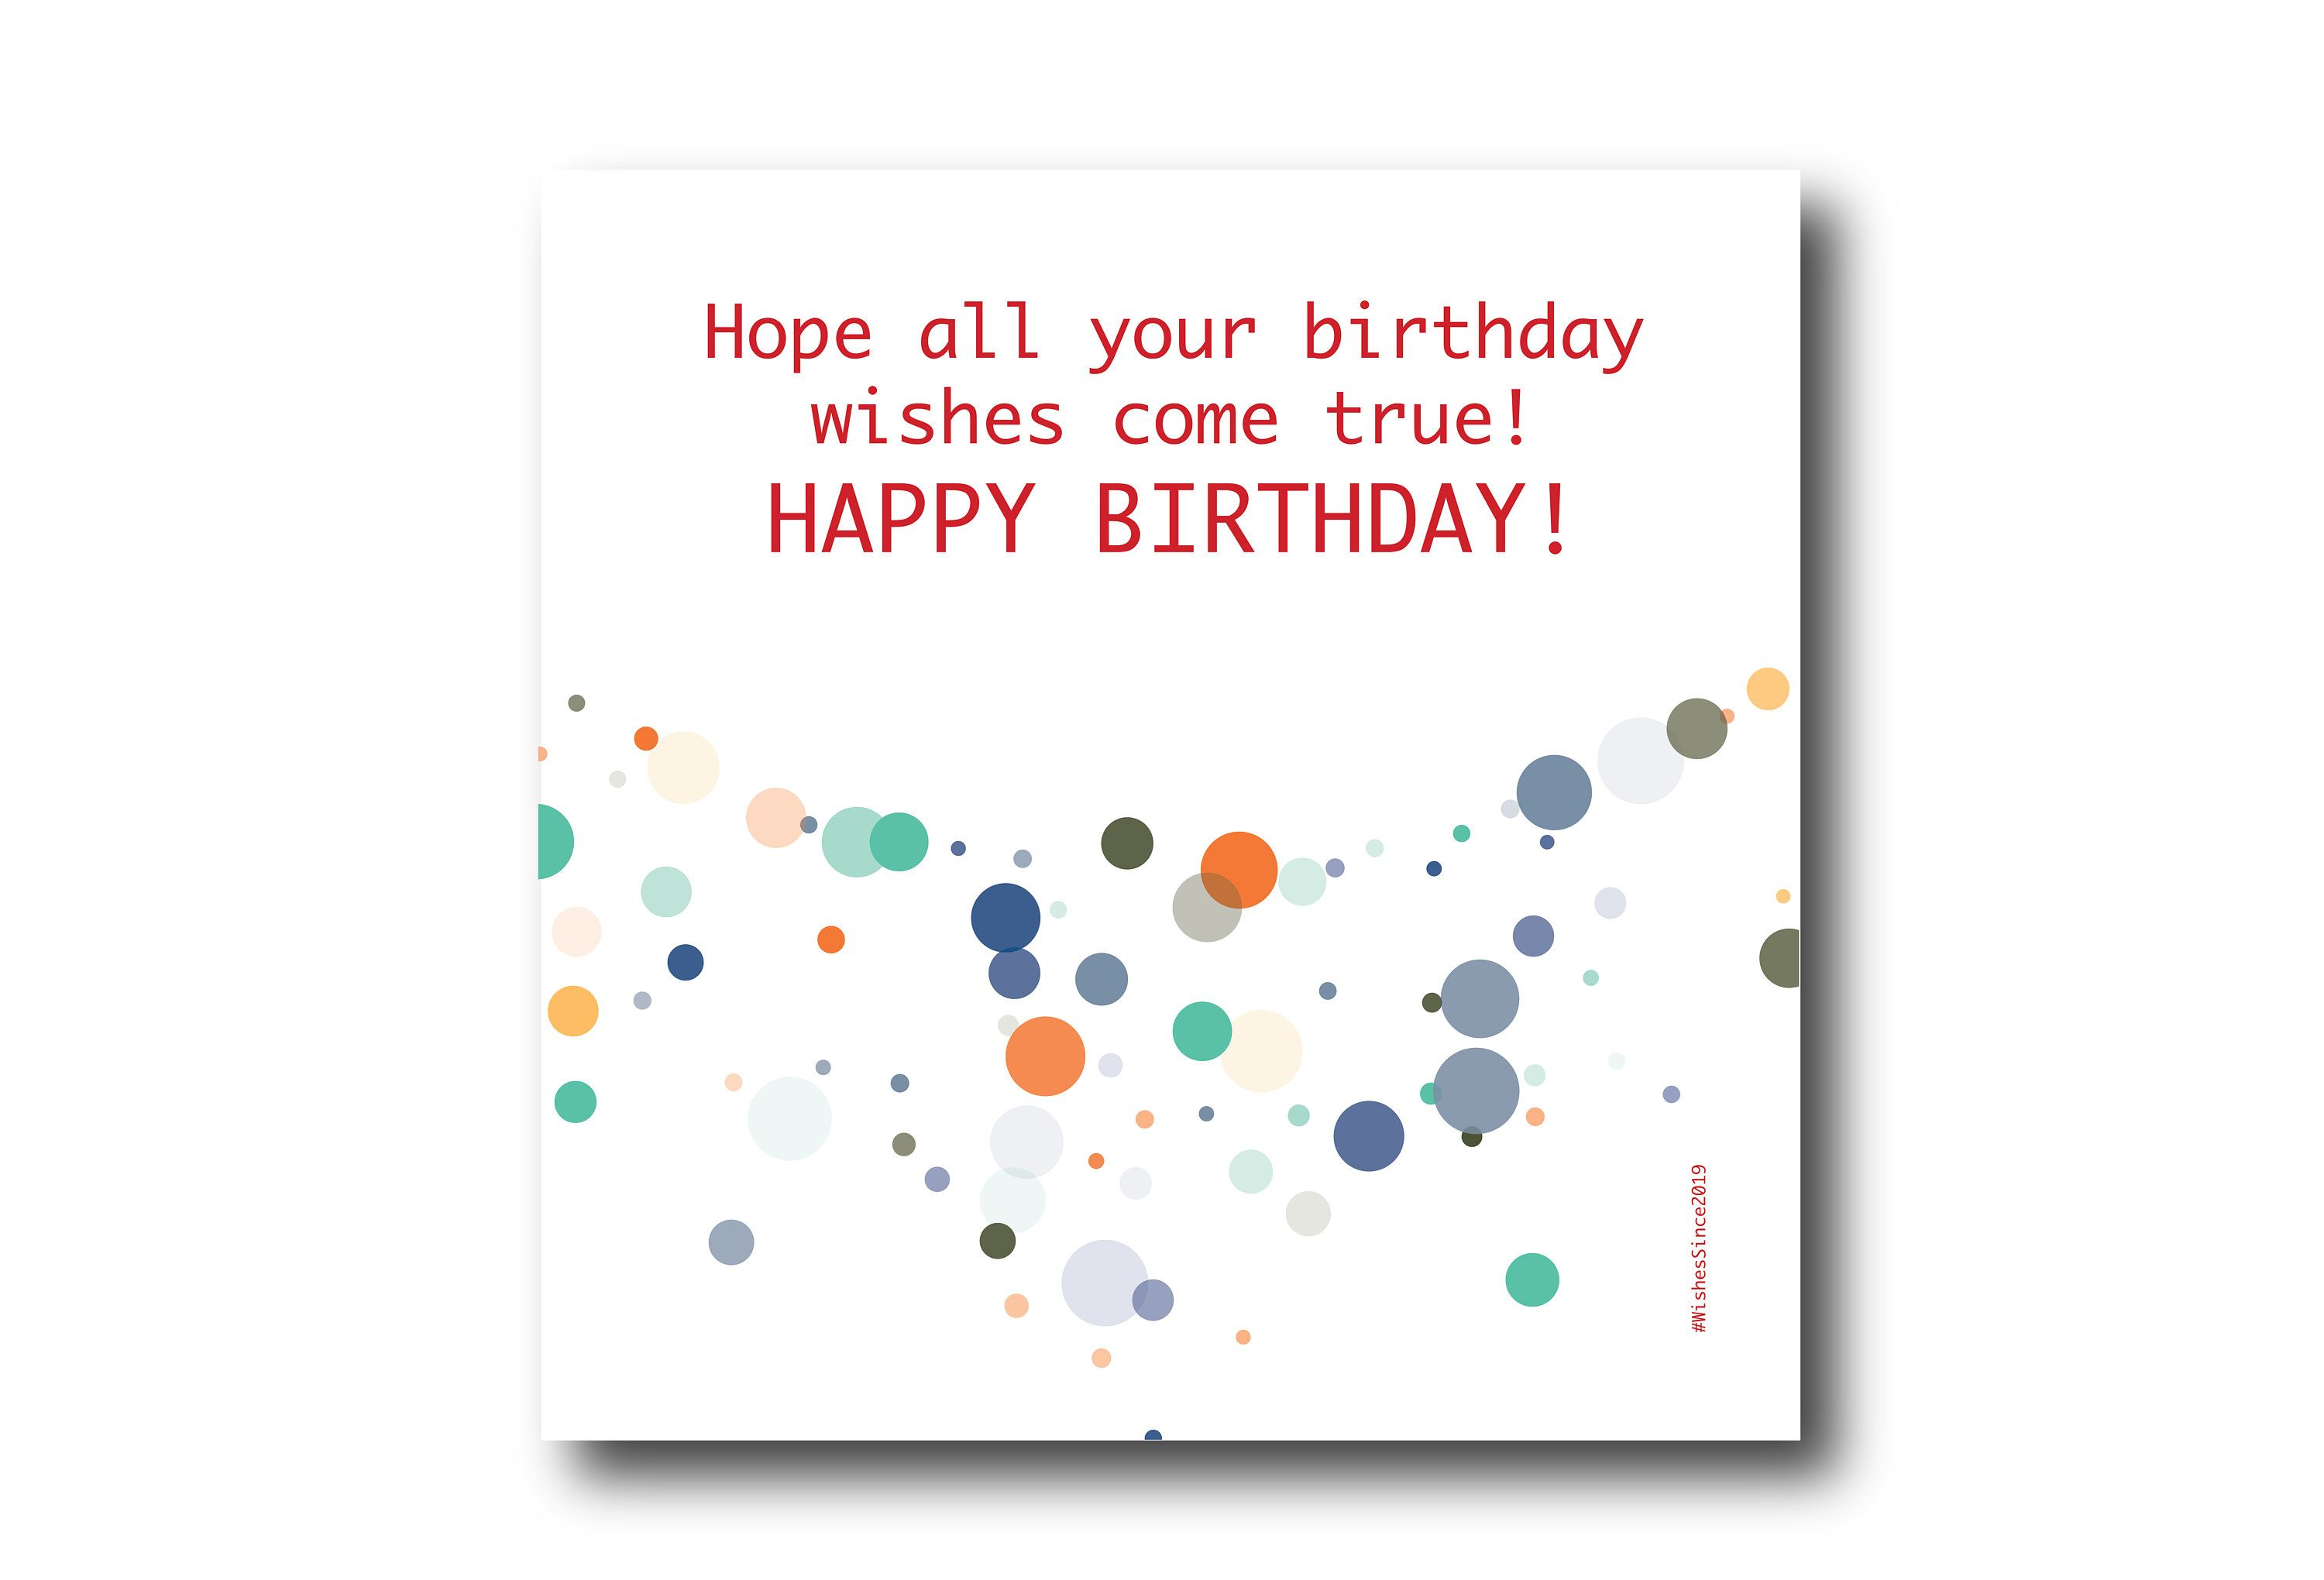 Digital Birthday Card Wishes Instant Download Printable At Etsy Birthday Wishes Greeting Cards Digital Birthday Cards Birthday Wishes Greetings